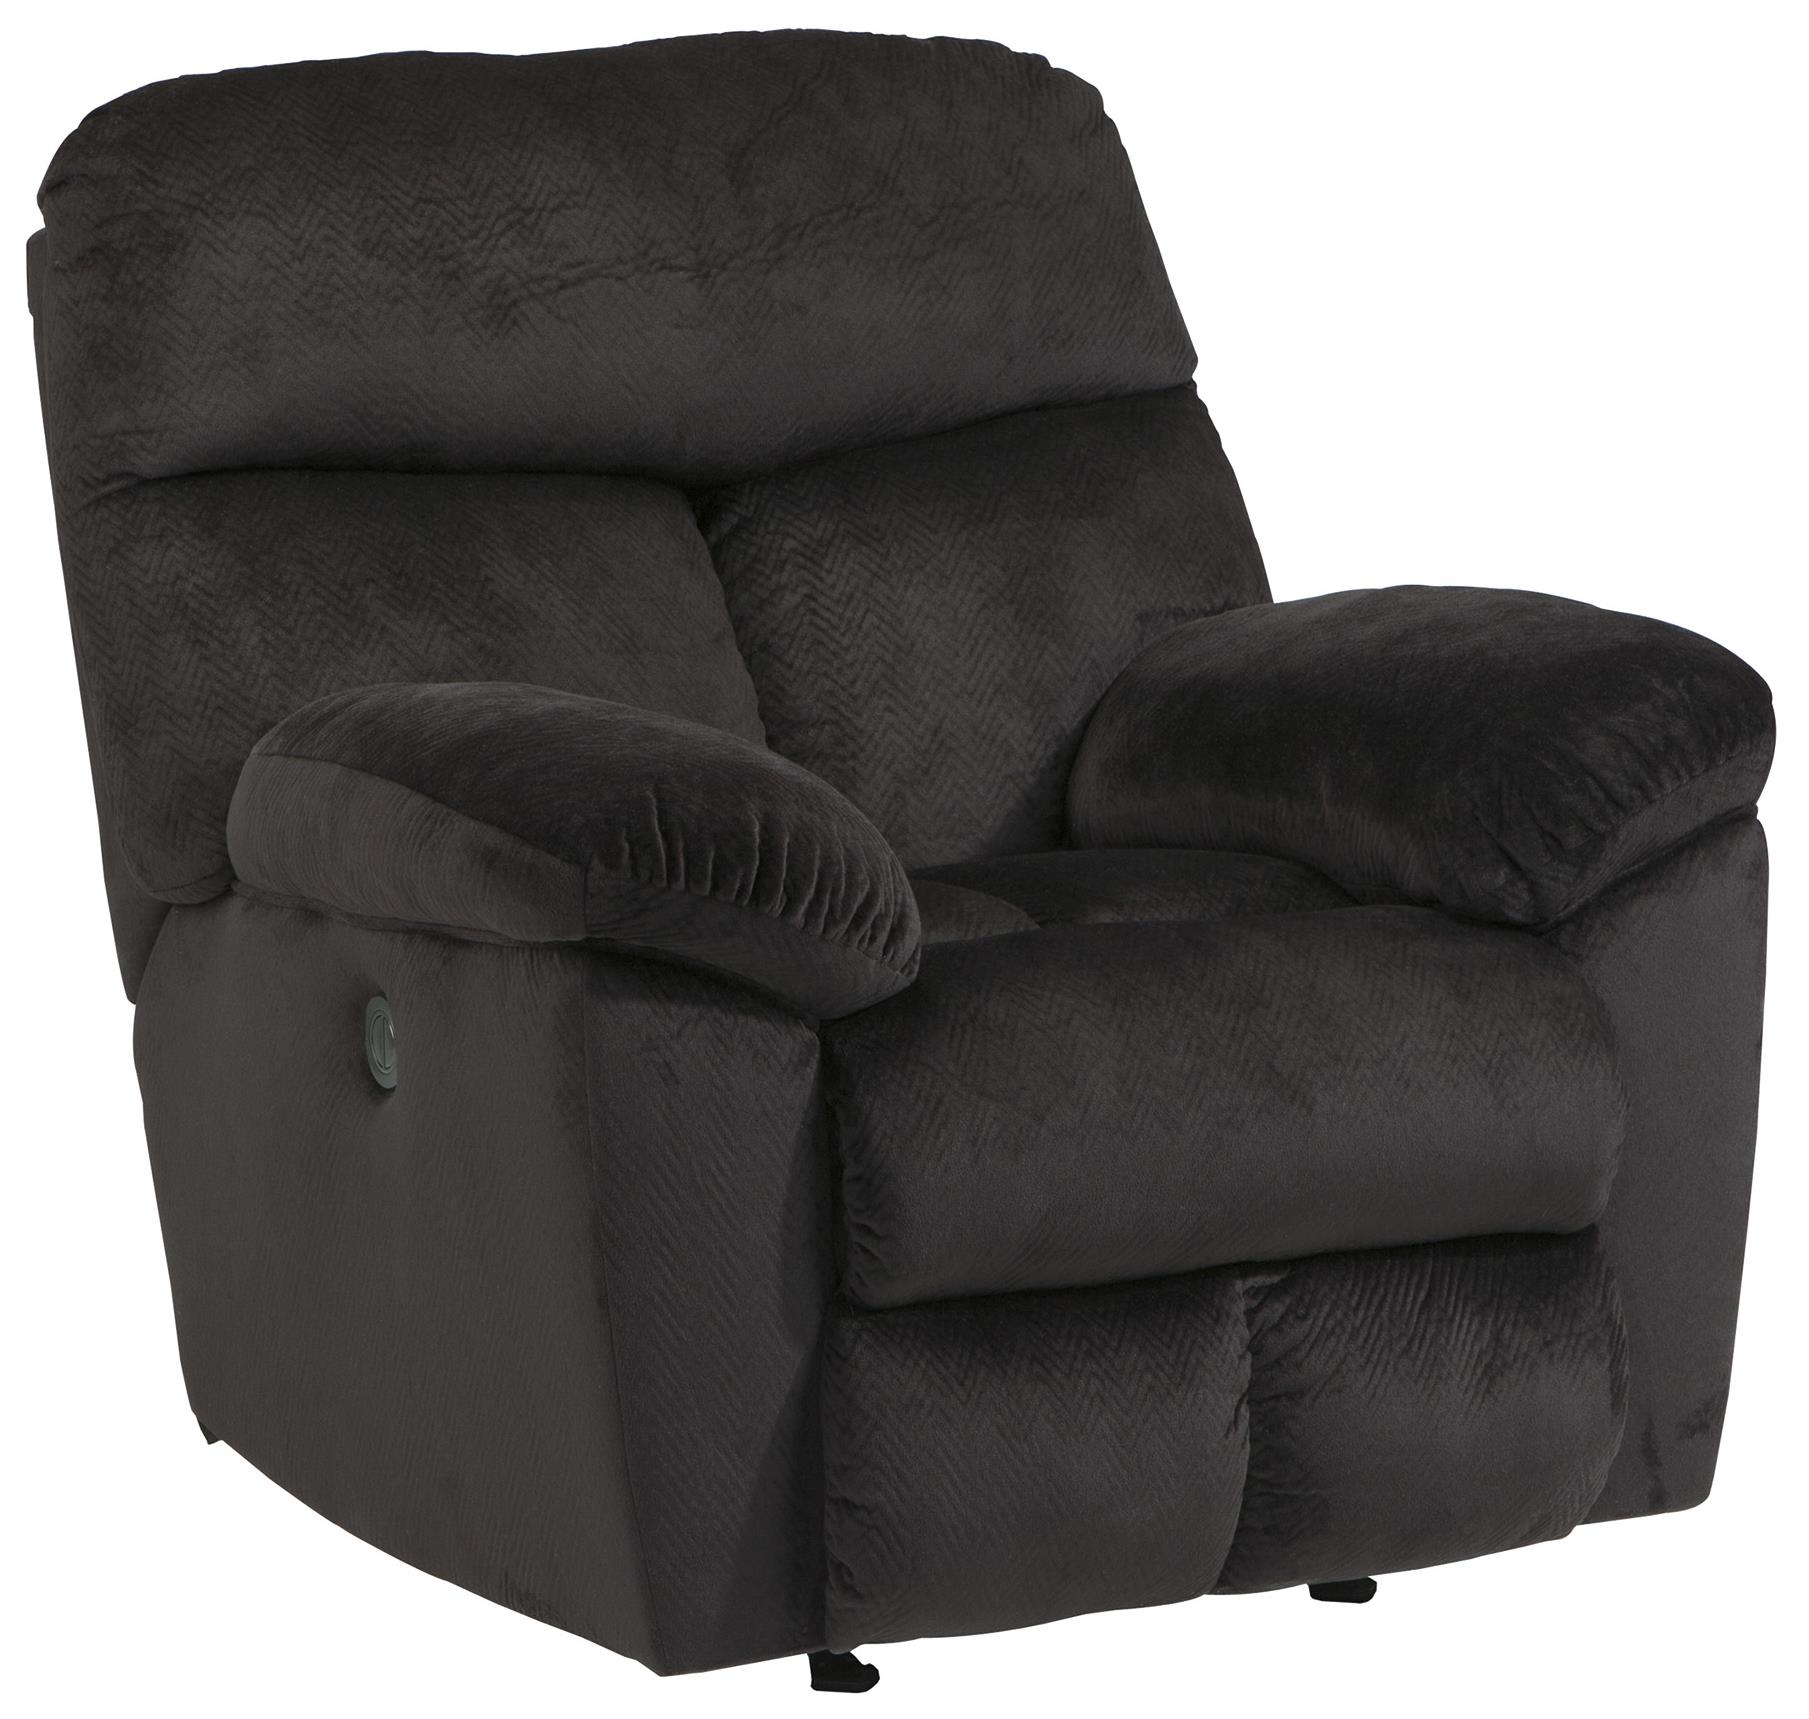 Signature Design by Ashley Saul Power Rocker Recliner - Item Number: 2230198